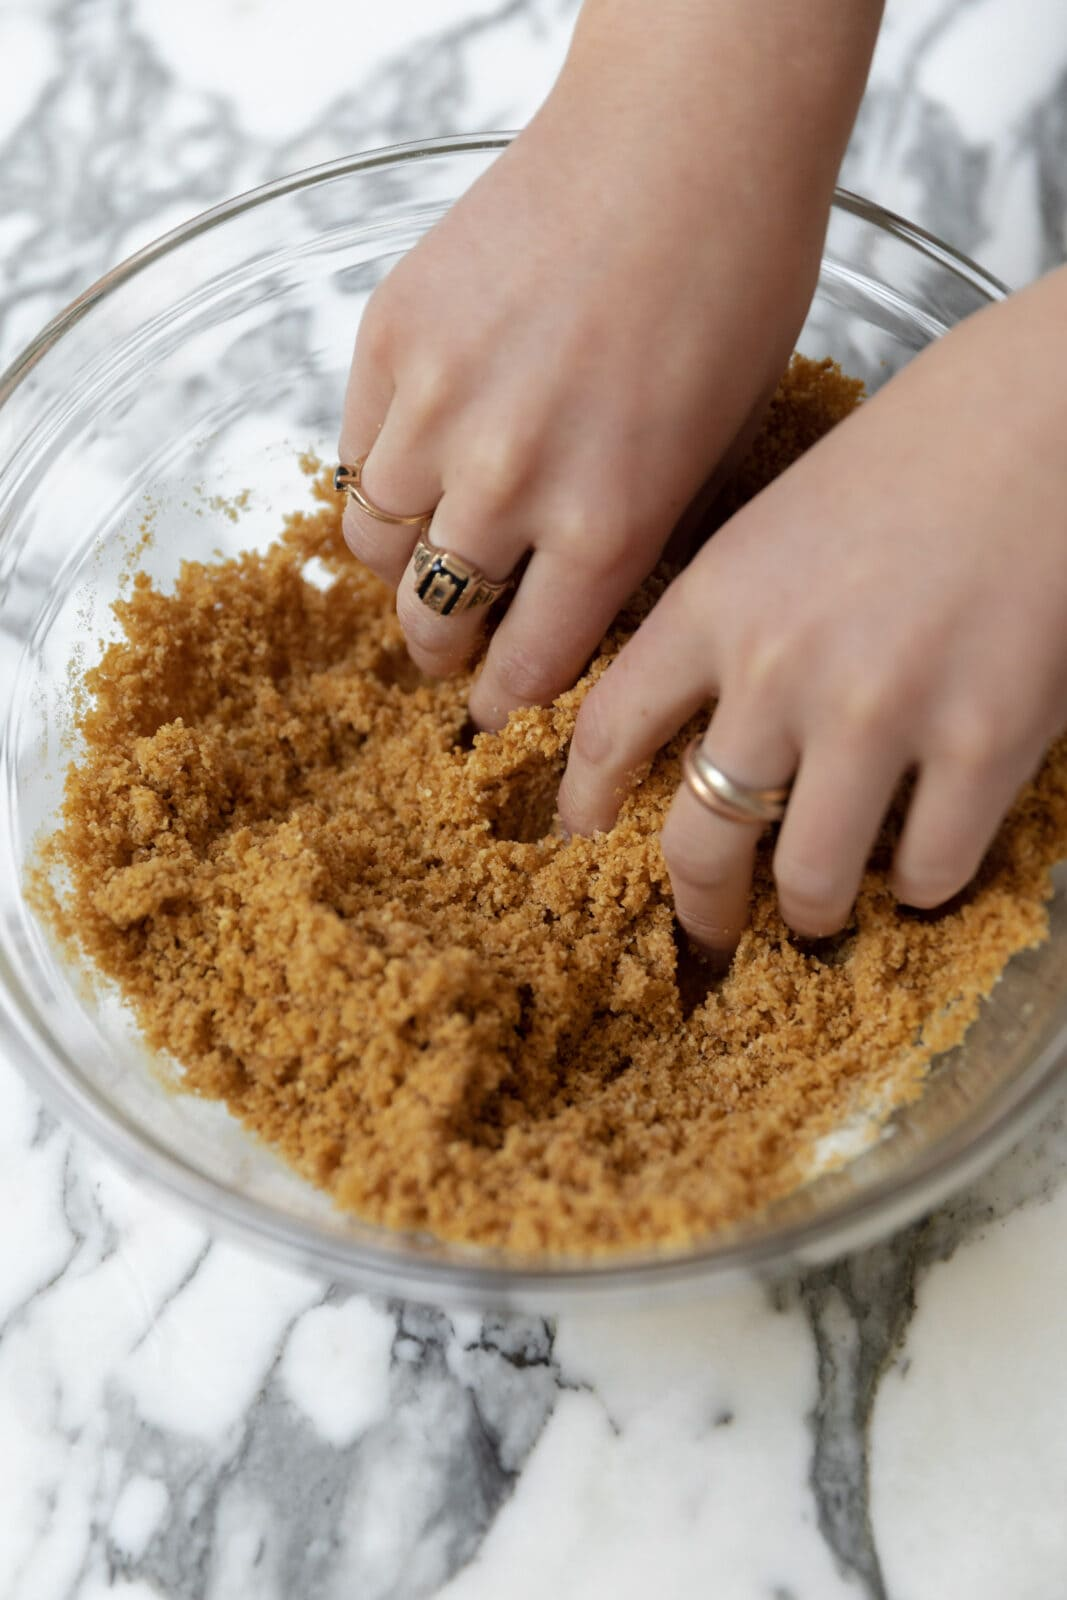 rub together the cheesecake batter until it looks like wet sand